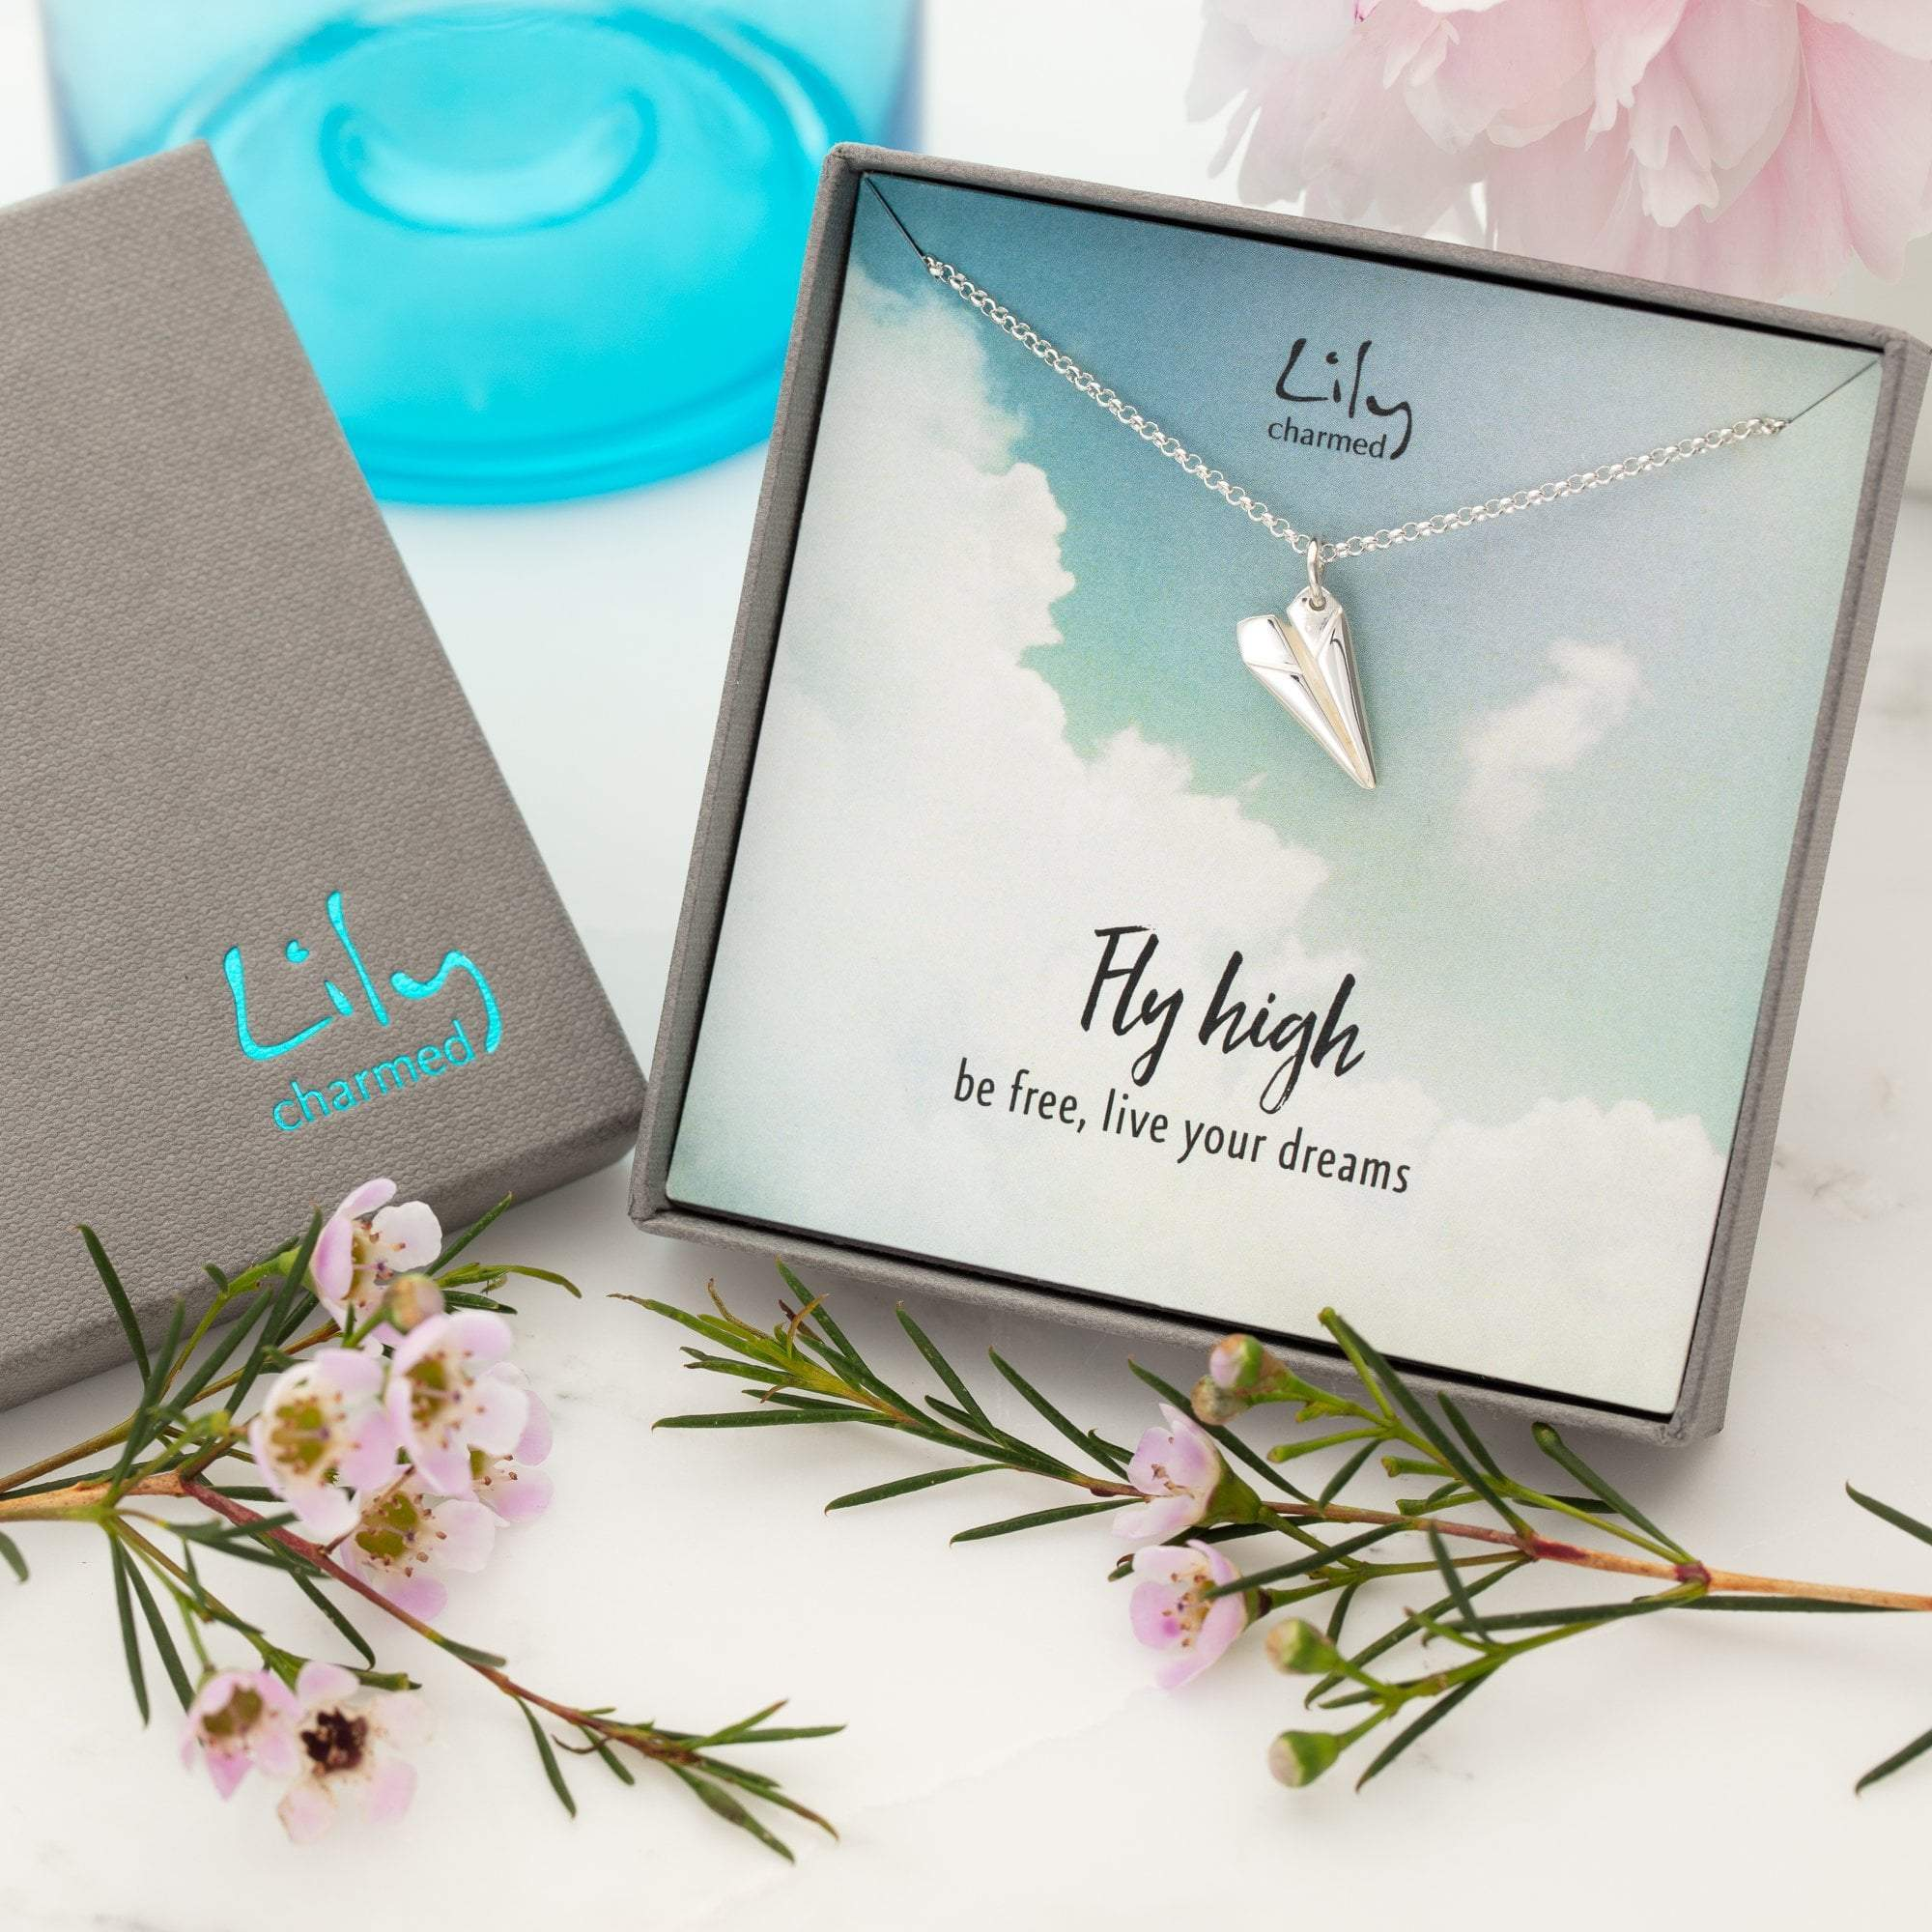 Silver Paper Plane Necklace with 'Fly High' Message - Lily Charmed